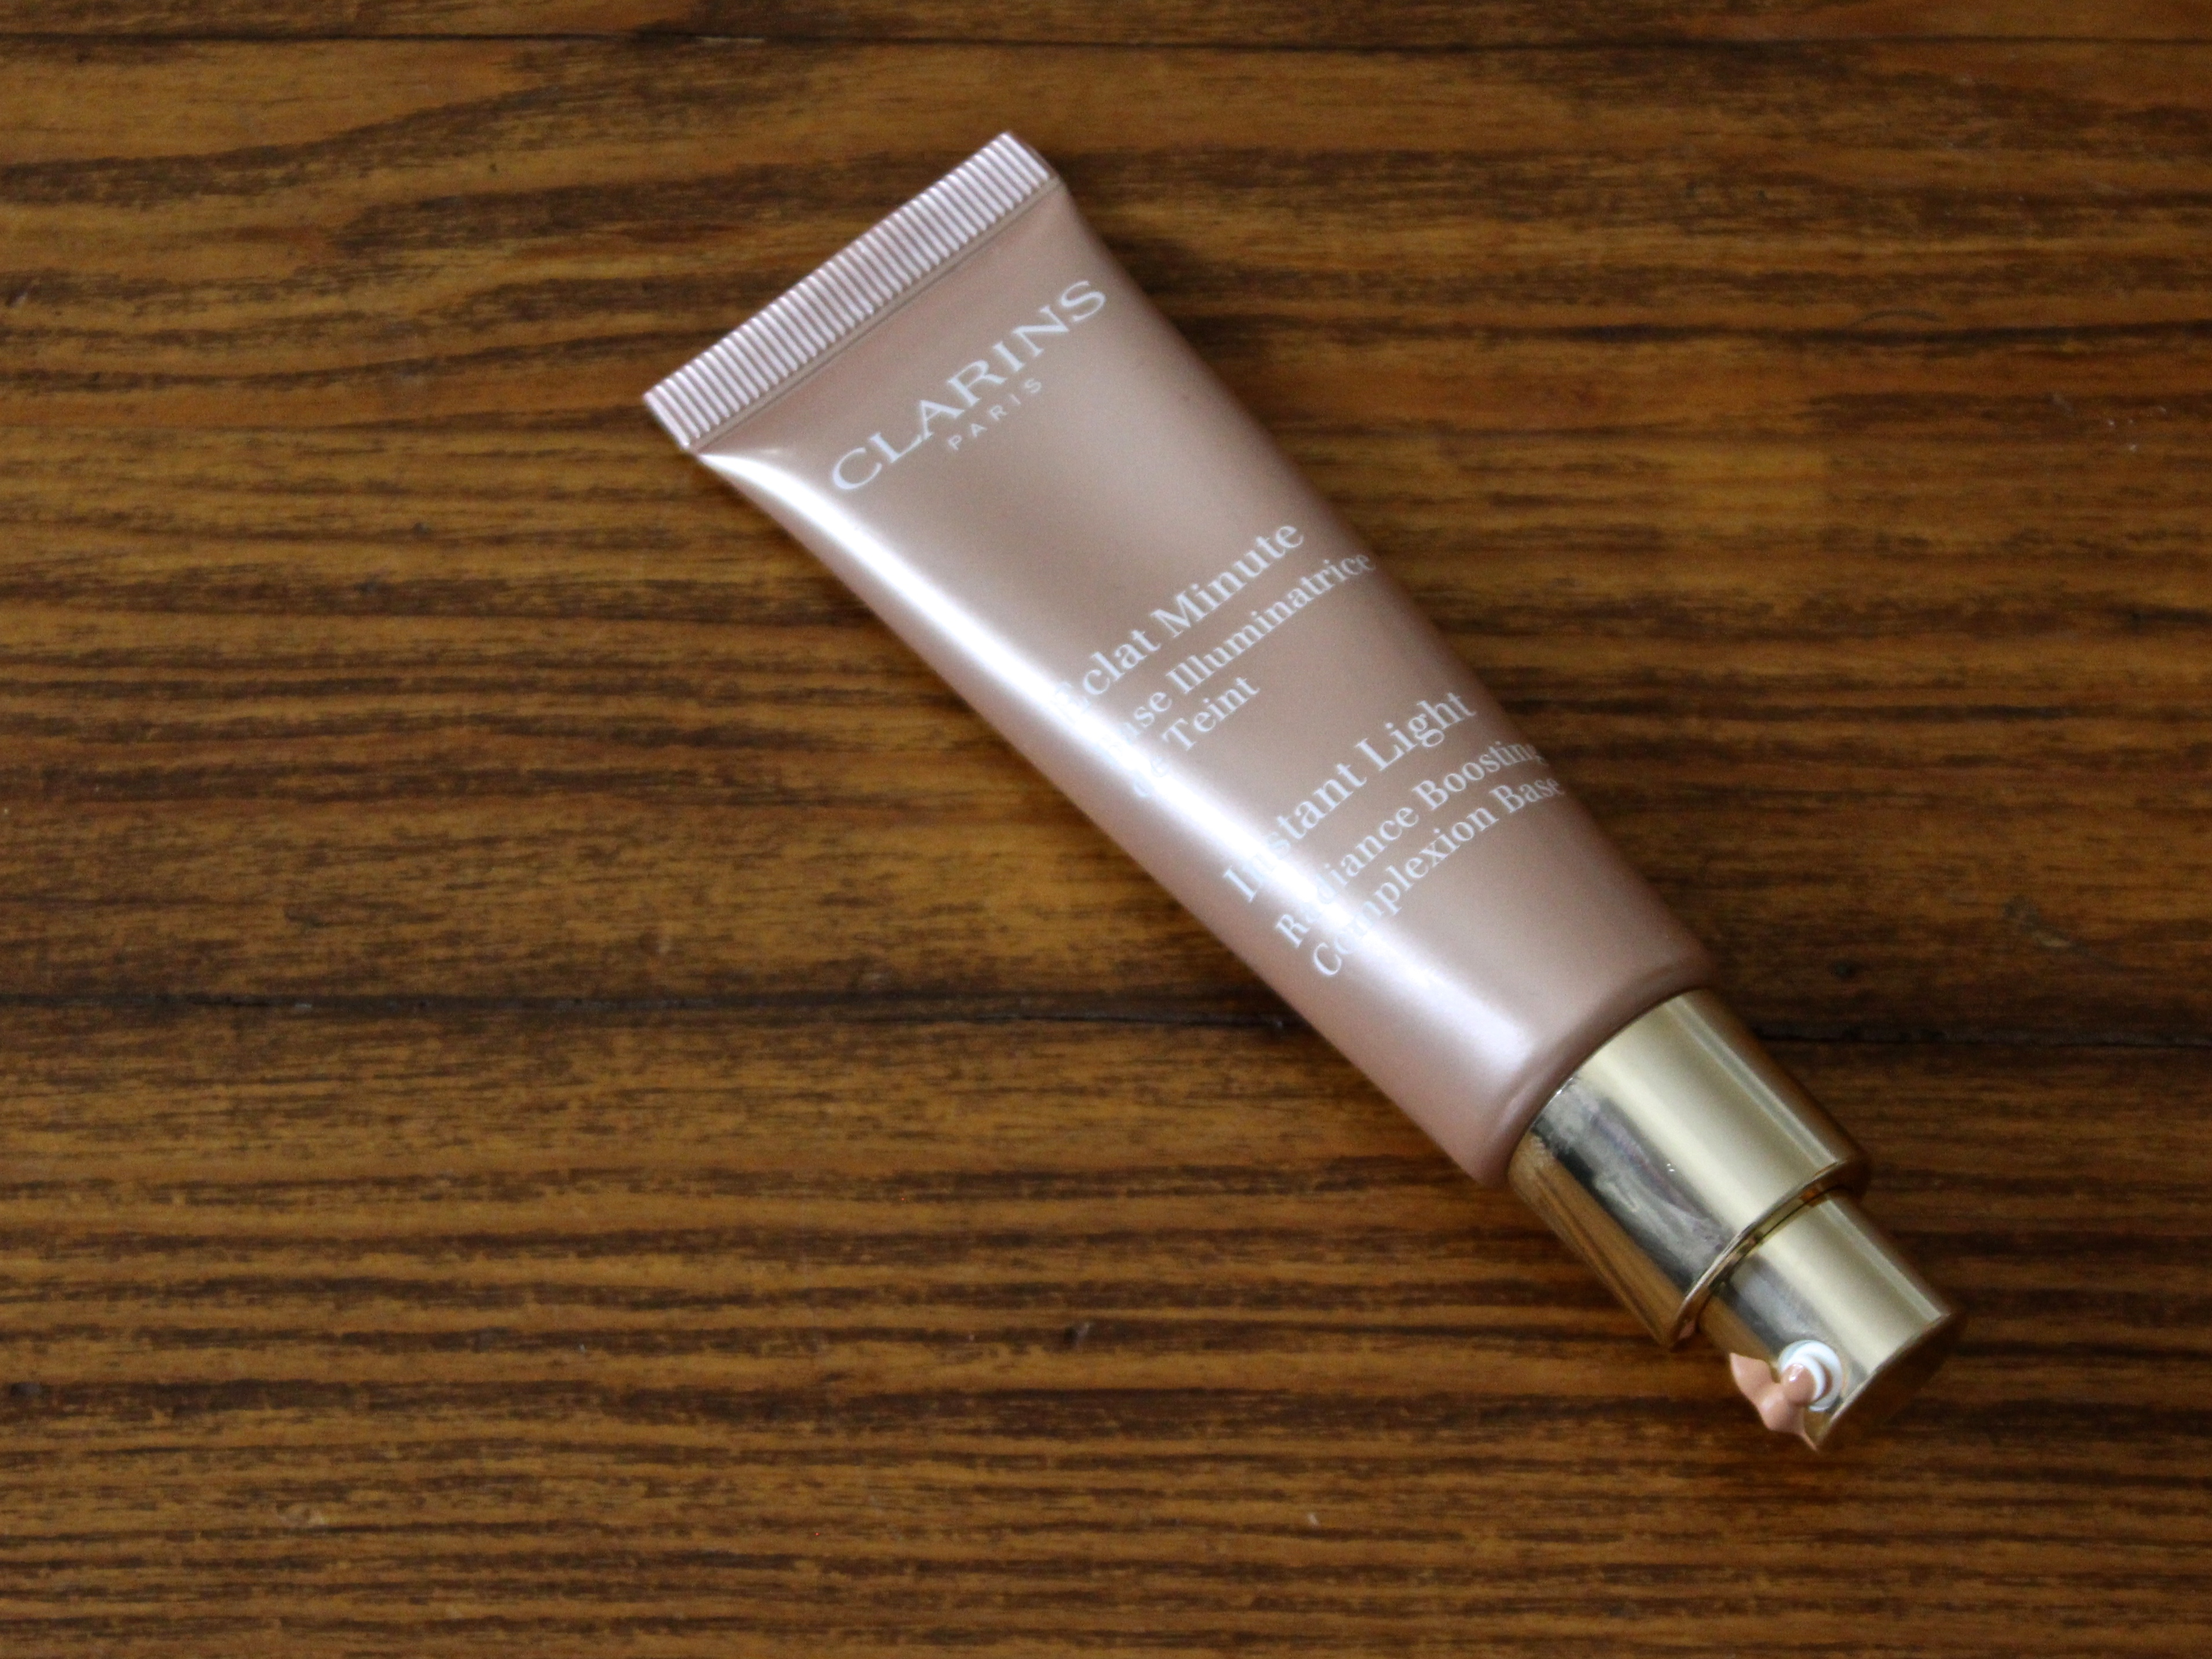 Clarins Instant Light Primer Review